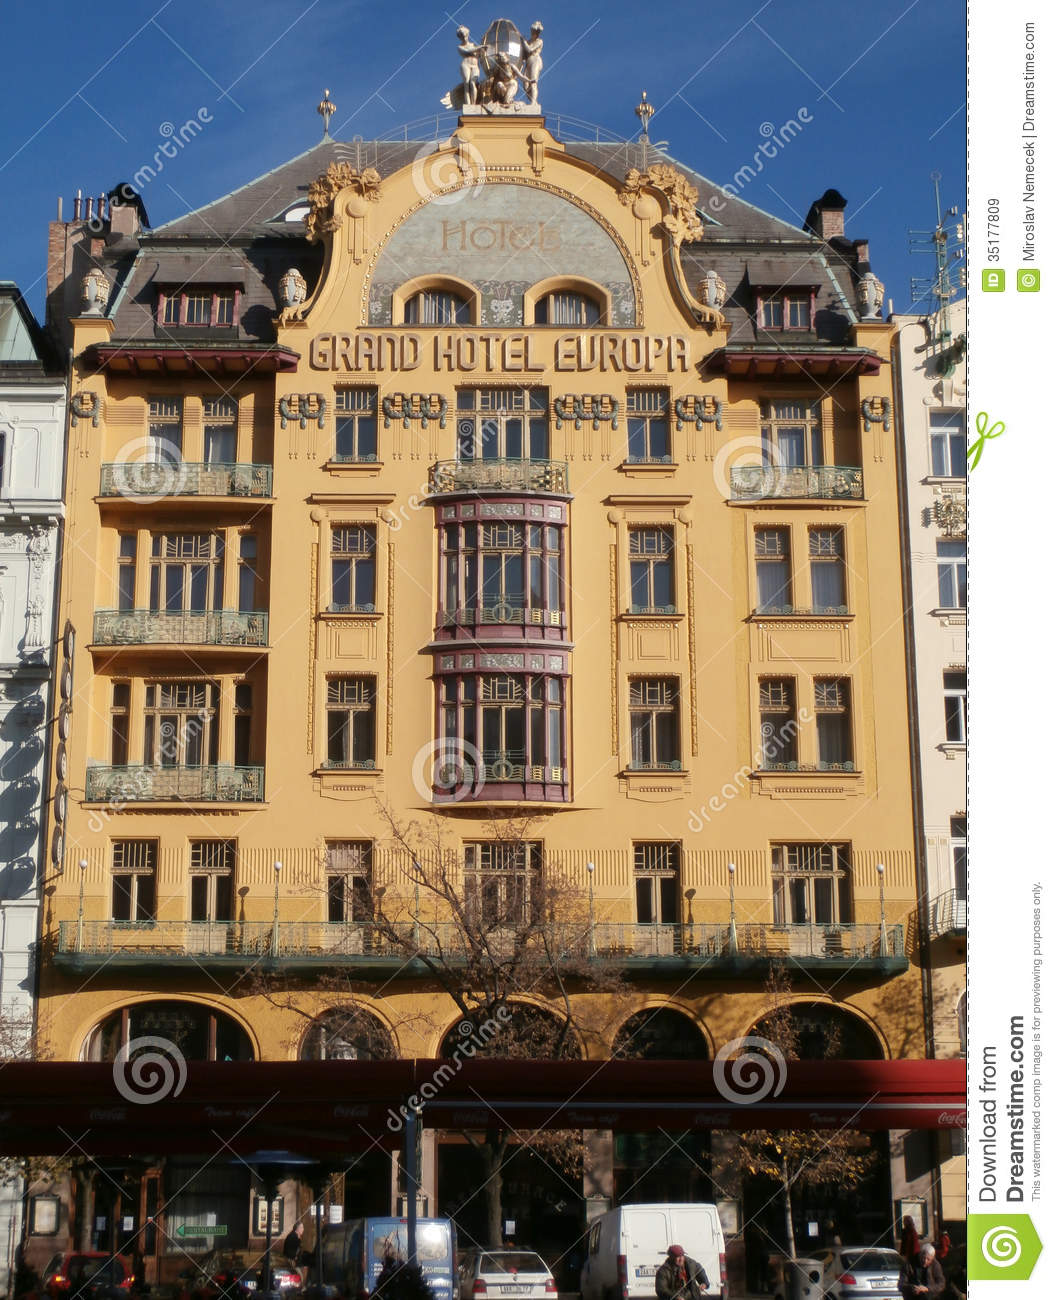 Grand hotel europe in prague editorial stock image image for Europe hotel prague